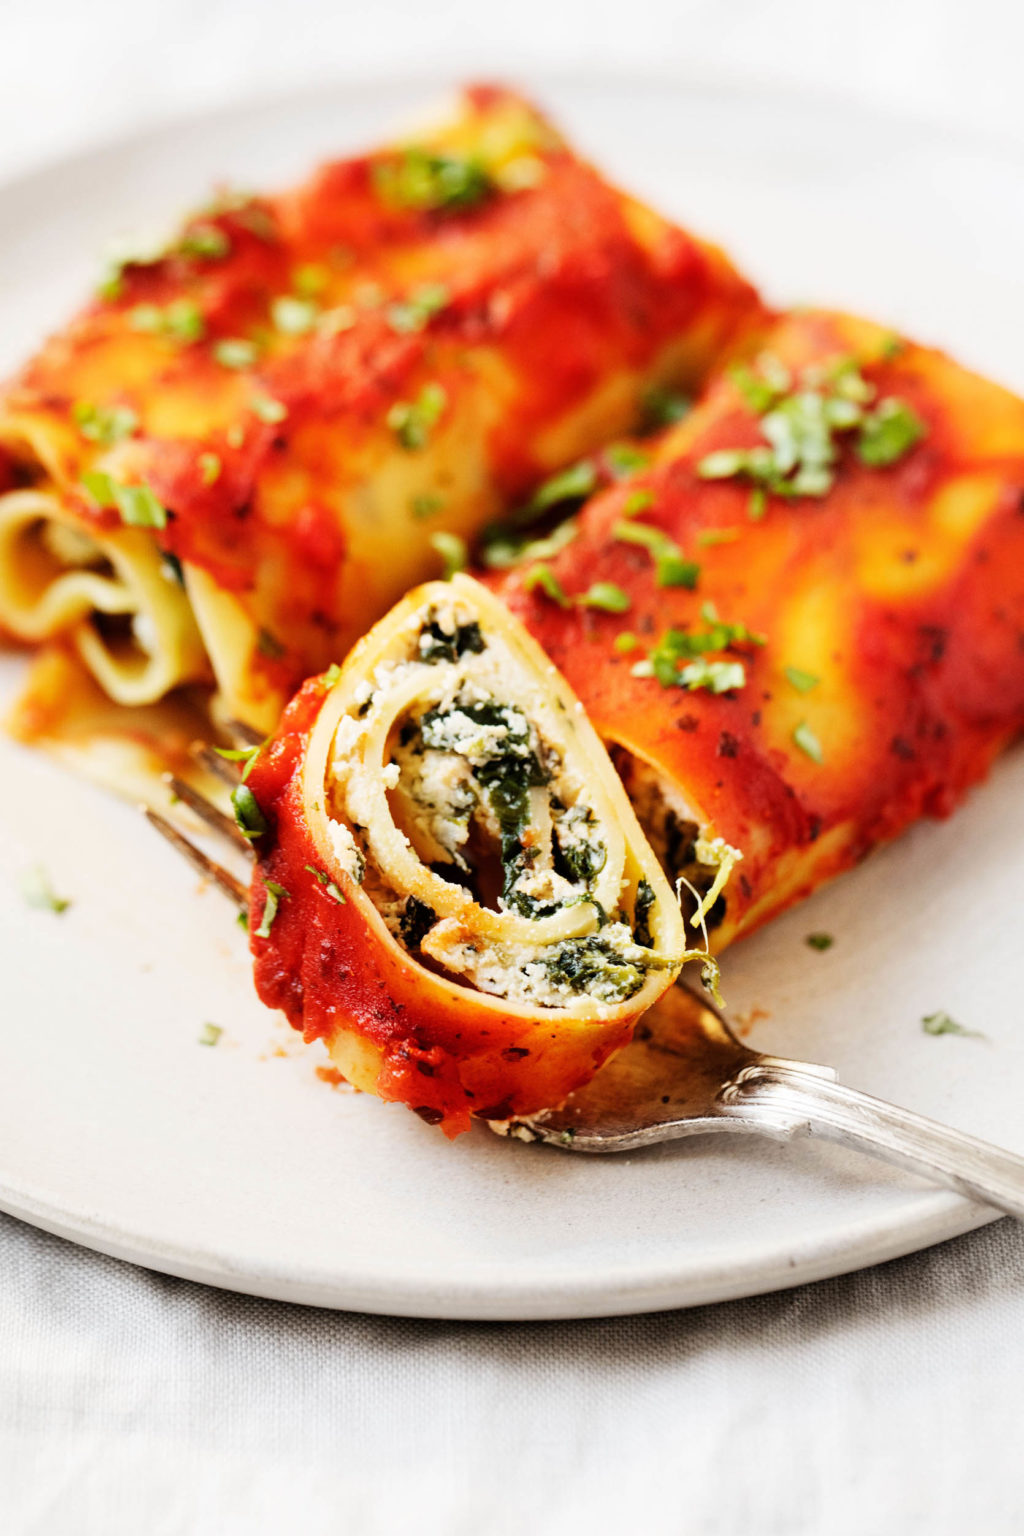 Two plant-based lasagna rolls are on a serving plate, and one of the rolls has just been sliced into.